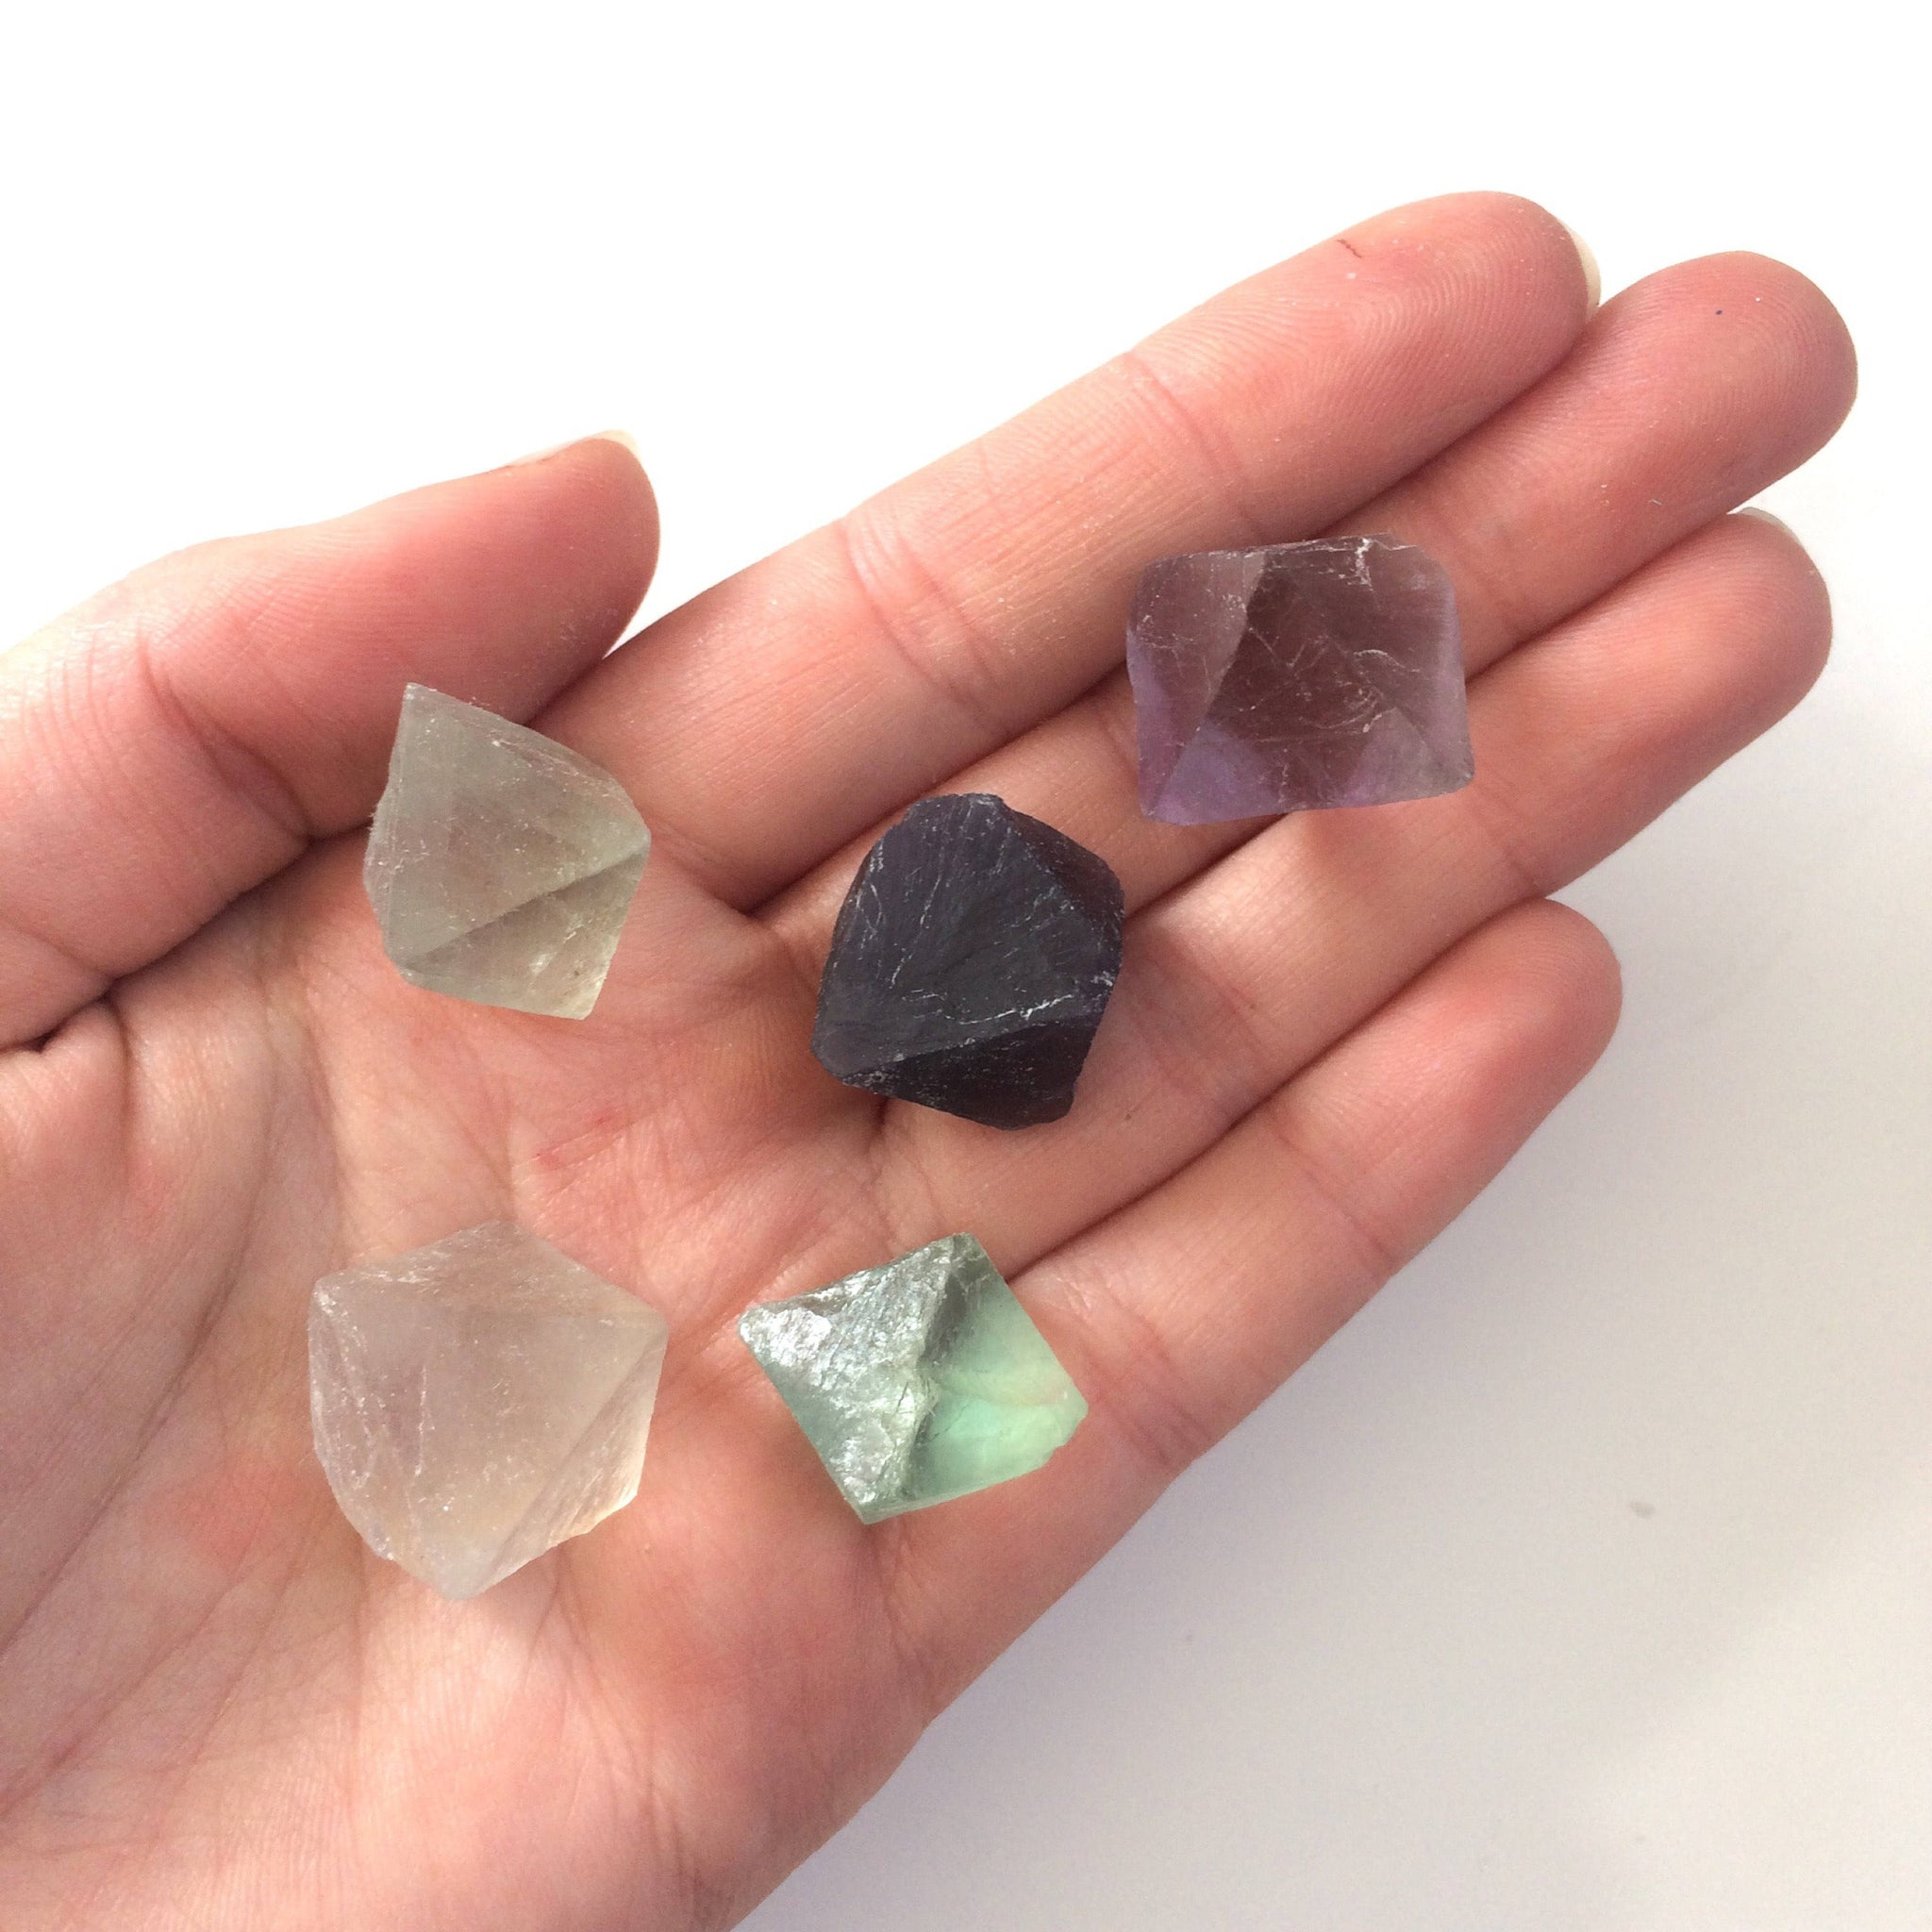 fluorite octahedron natural raw green rough rock stone small